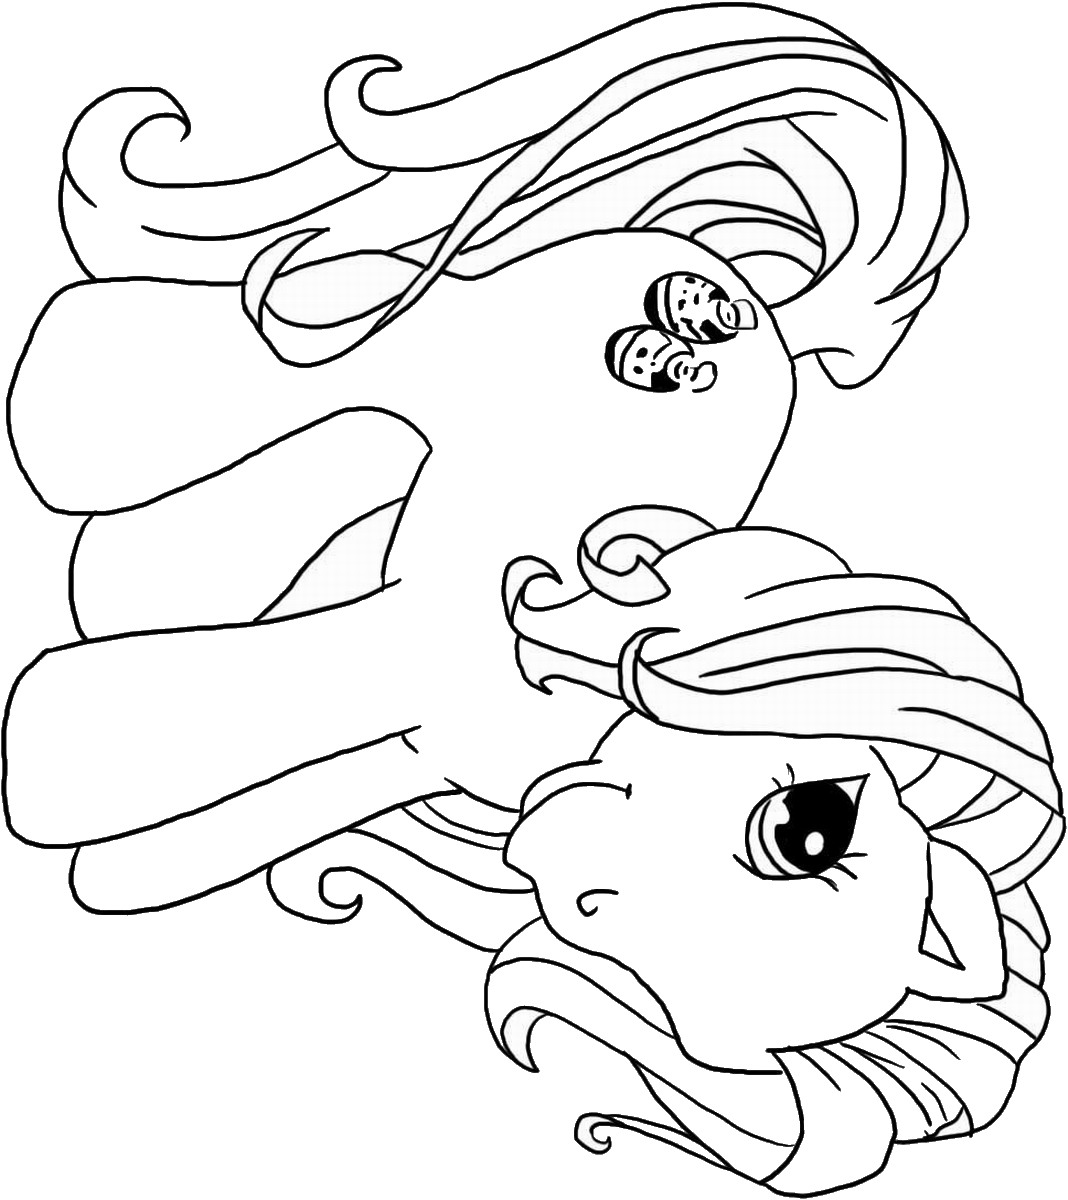 coloring page pony free printable my little pony coloring pages for kids page pony coloring